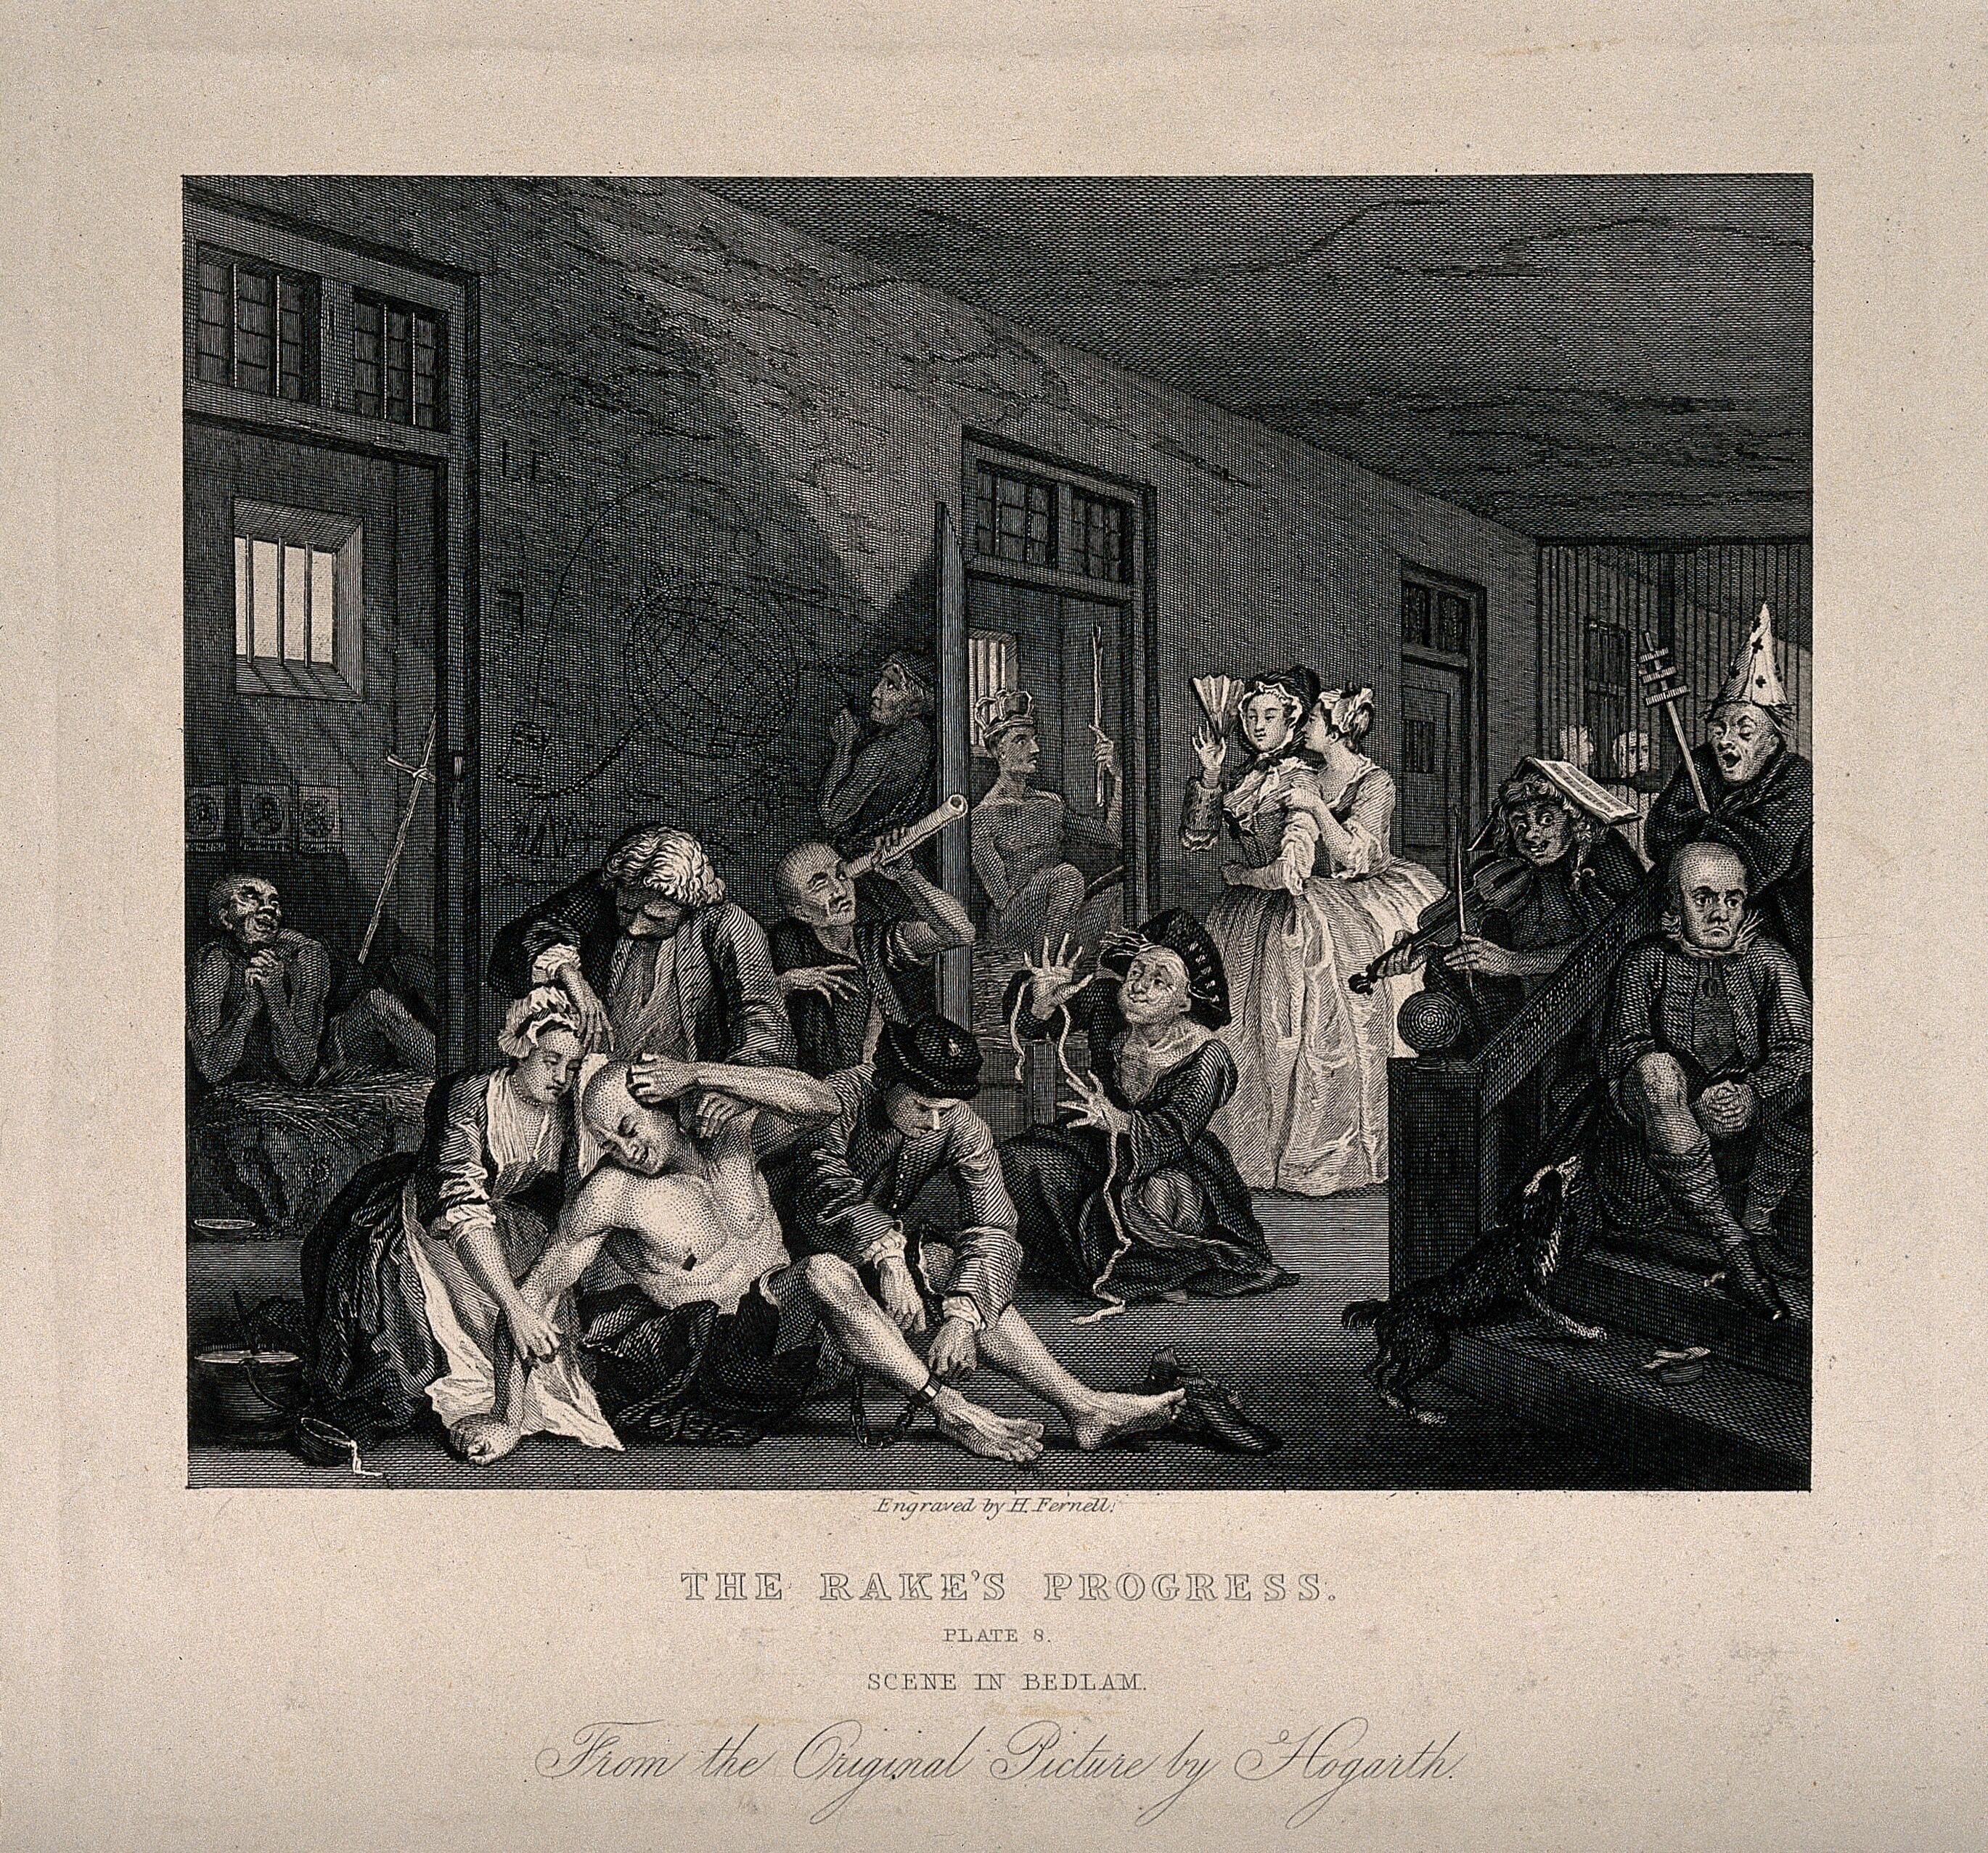 Engraving of a scene from Bethlem Hospital taken from William Hogarth's series, 'A Rake's Progress'